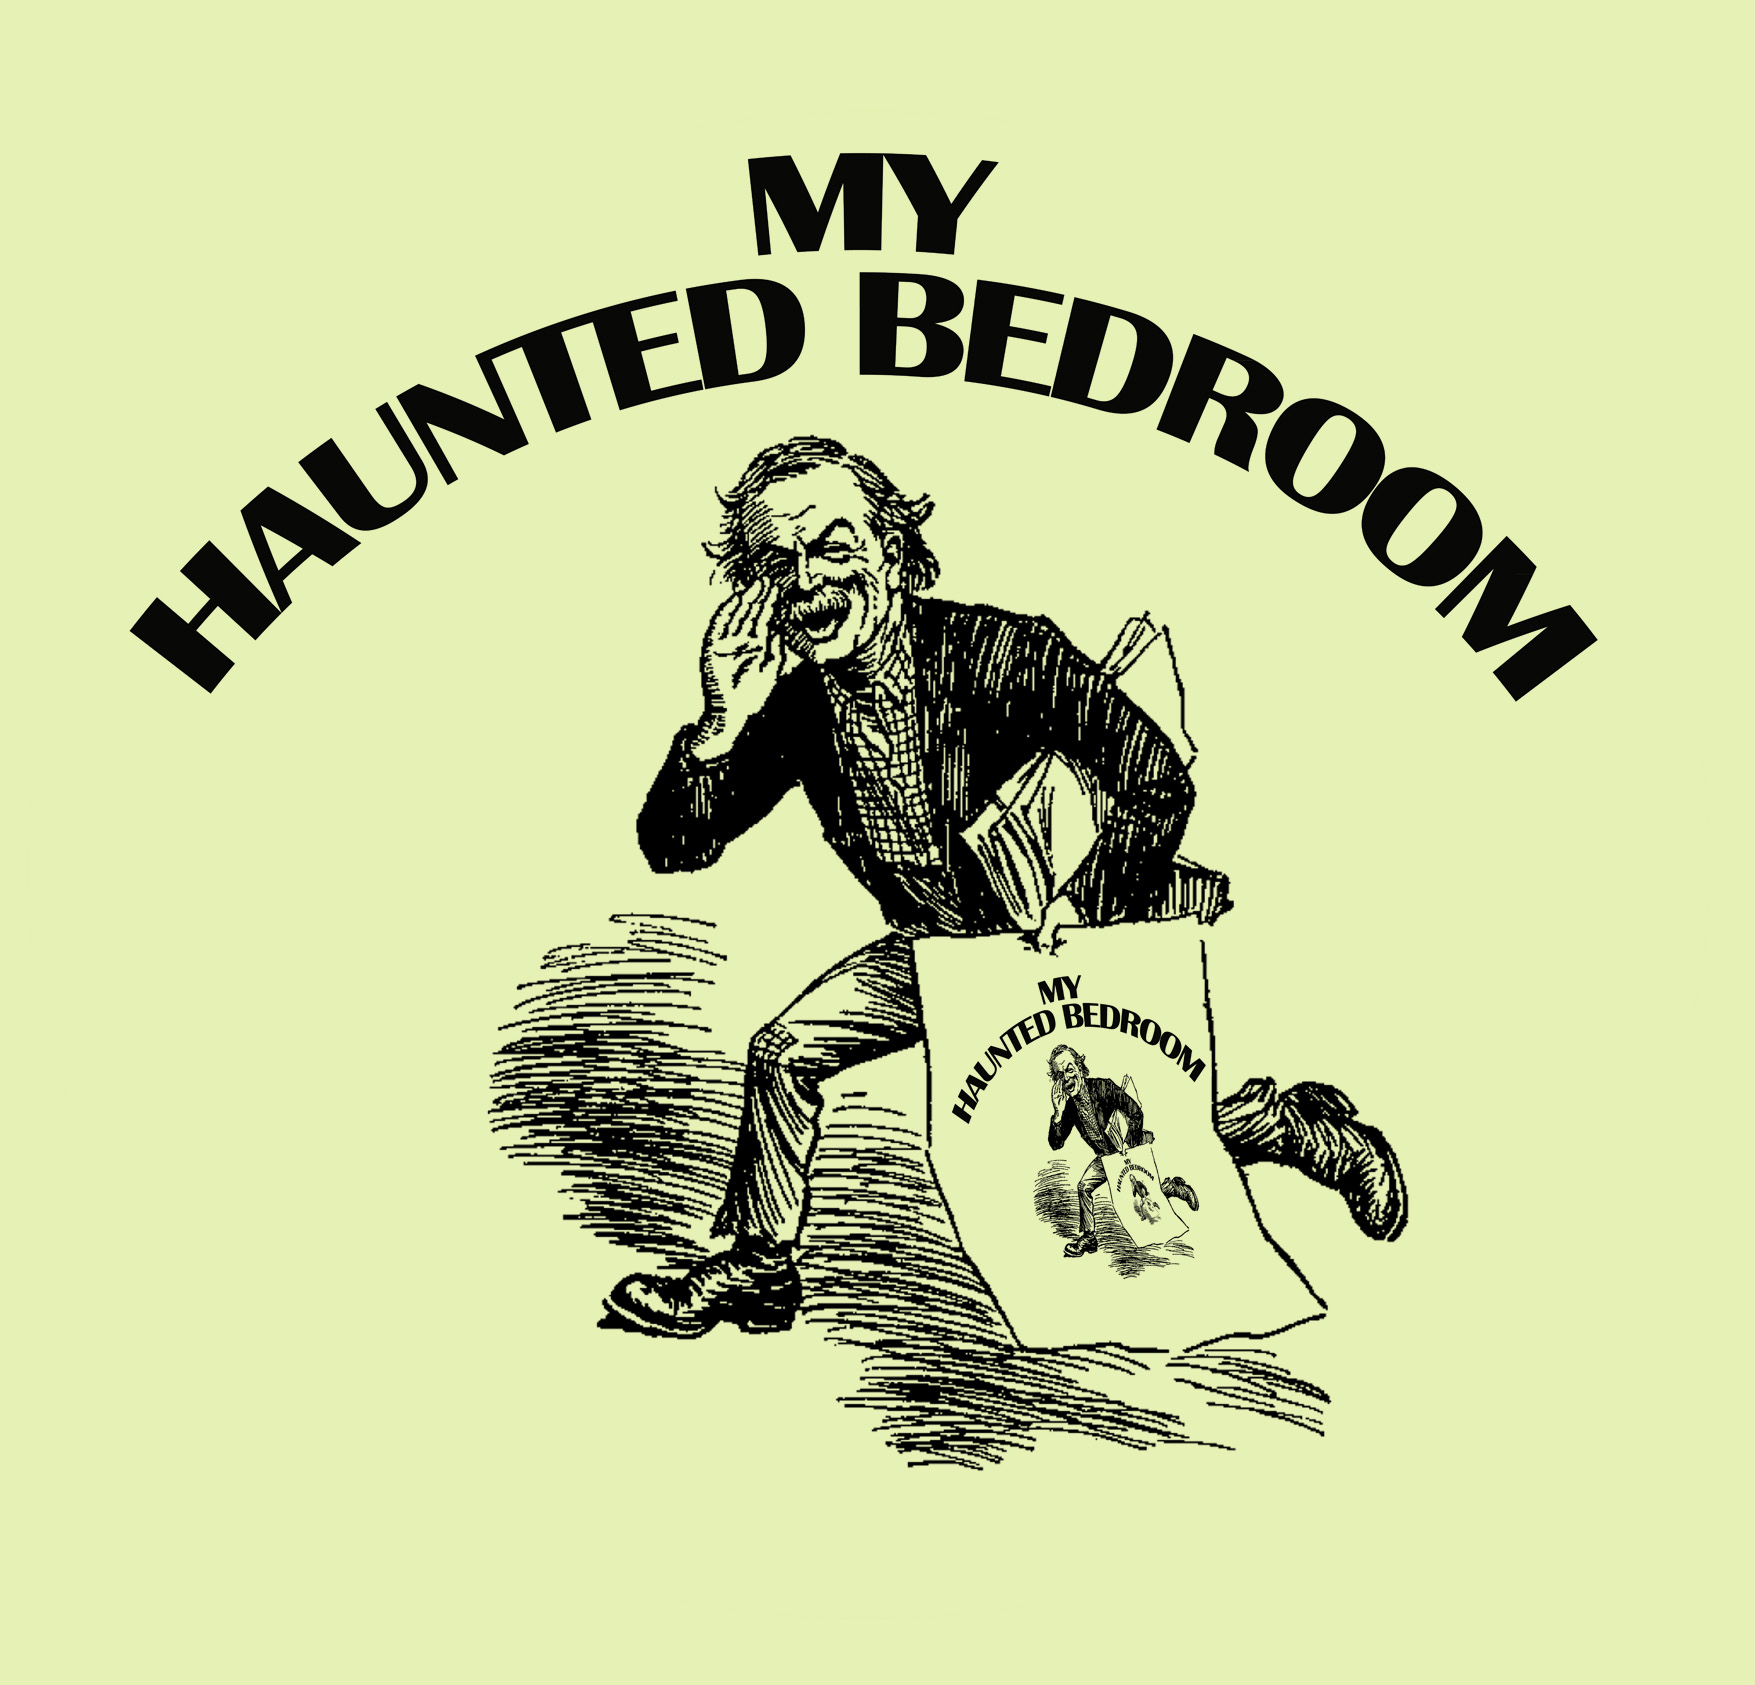 My Haunted Bedroom